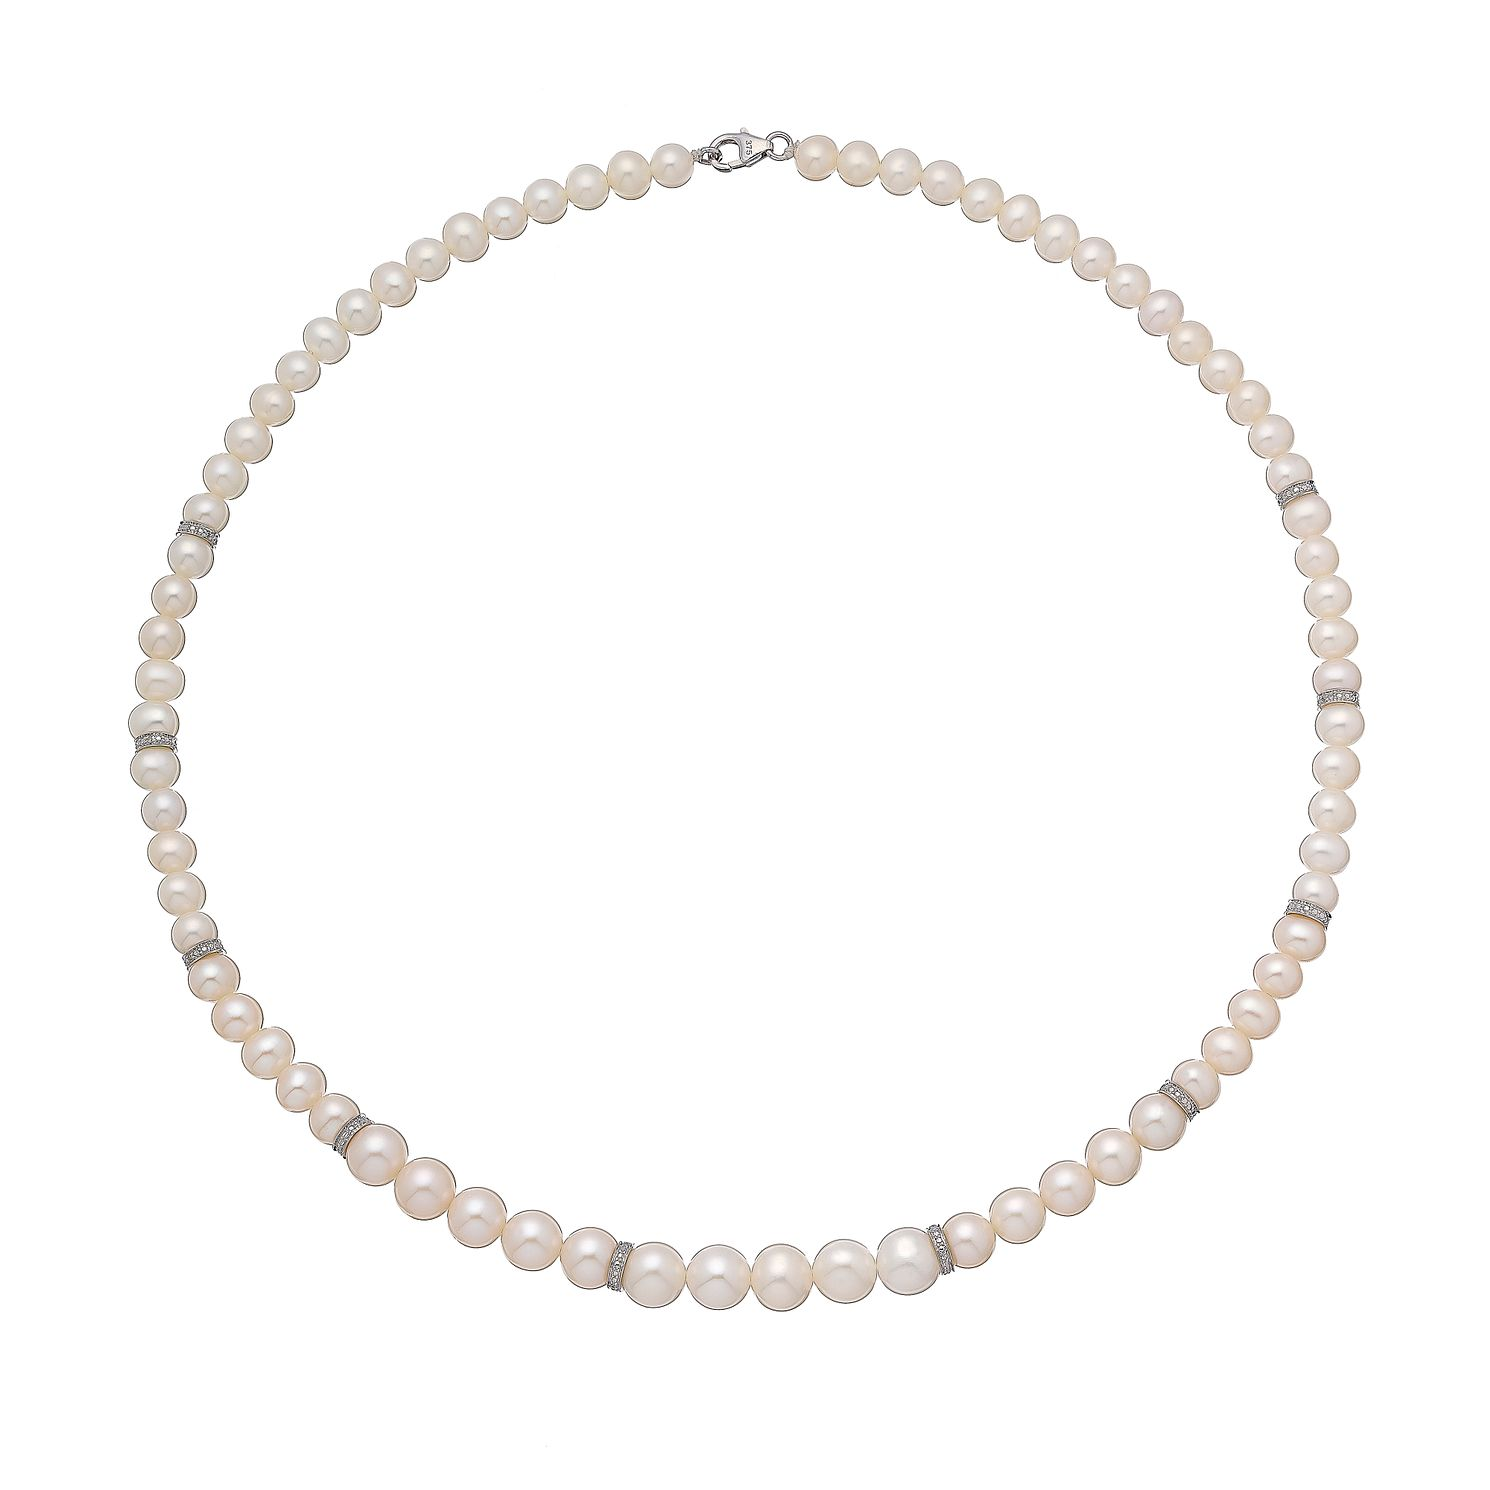 9ct White Gold Cultured Freshwater Pearl & Diamond Necklace - Product number 2828456